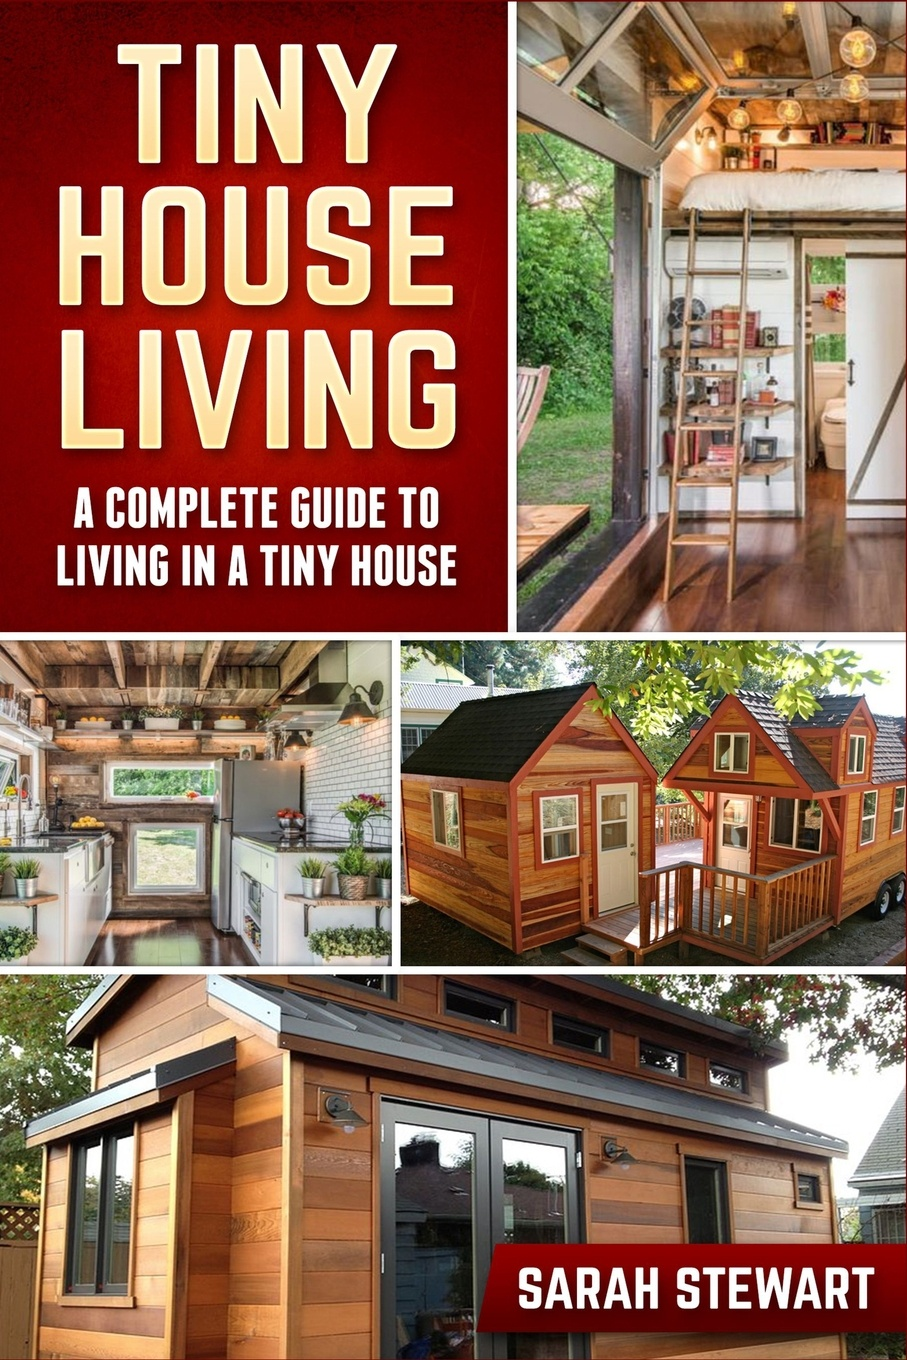 Tiny Home Living. A Complete Guide to Living in a Tiny House